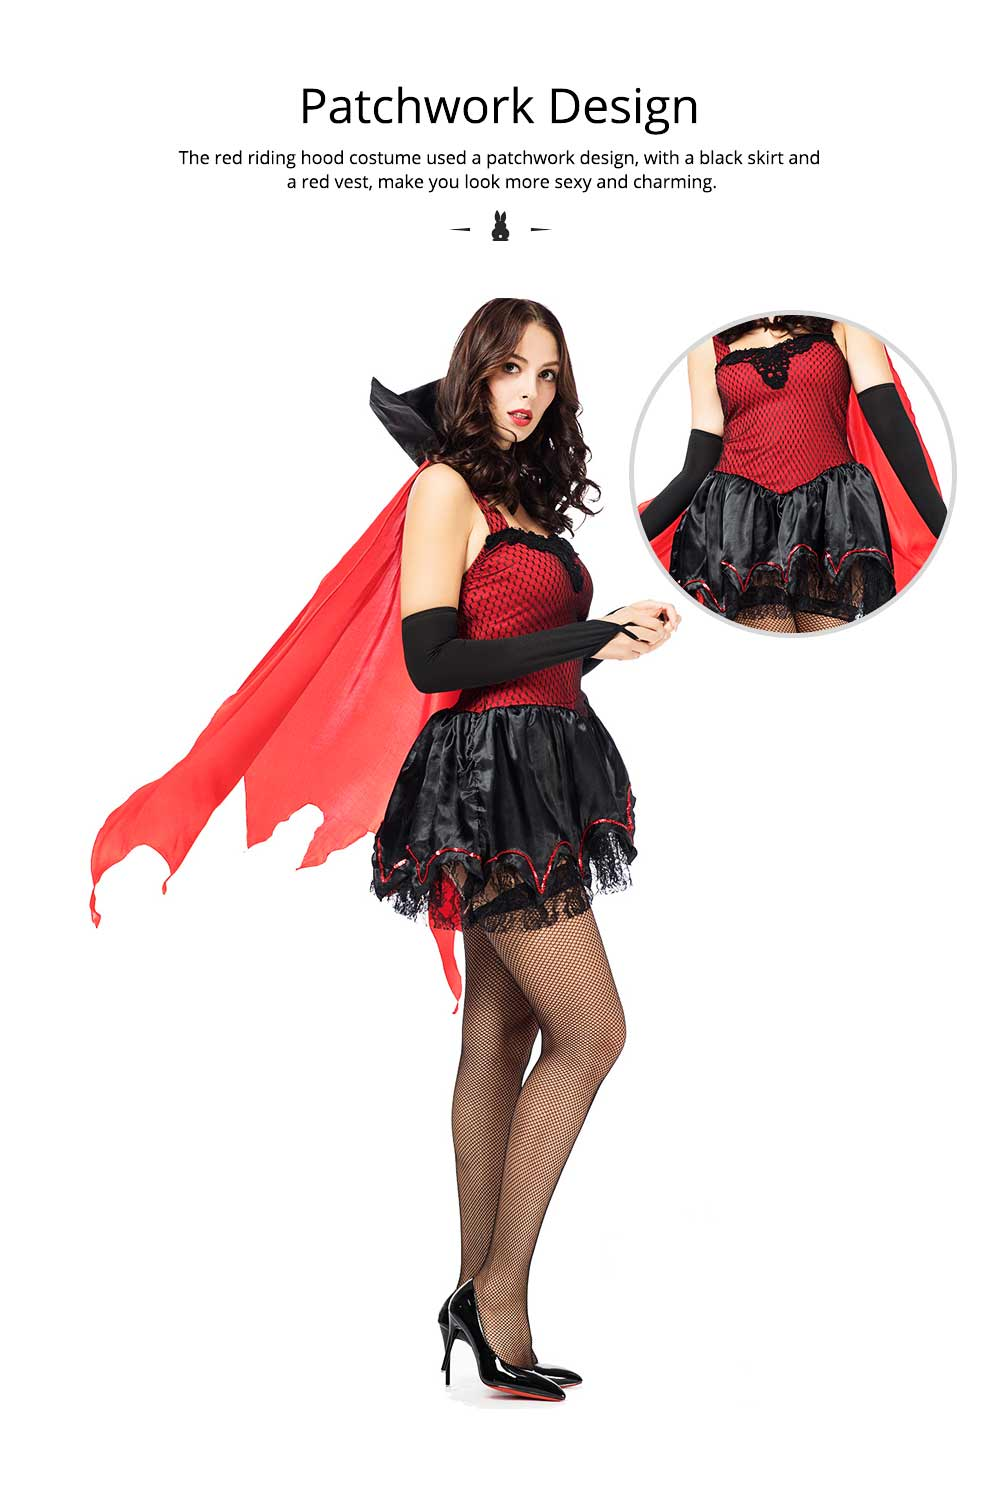 Red Riding Hood Easter Costume, Halloween Costumes for Women Adult Cosplay Dress Role Playing Costume 3